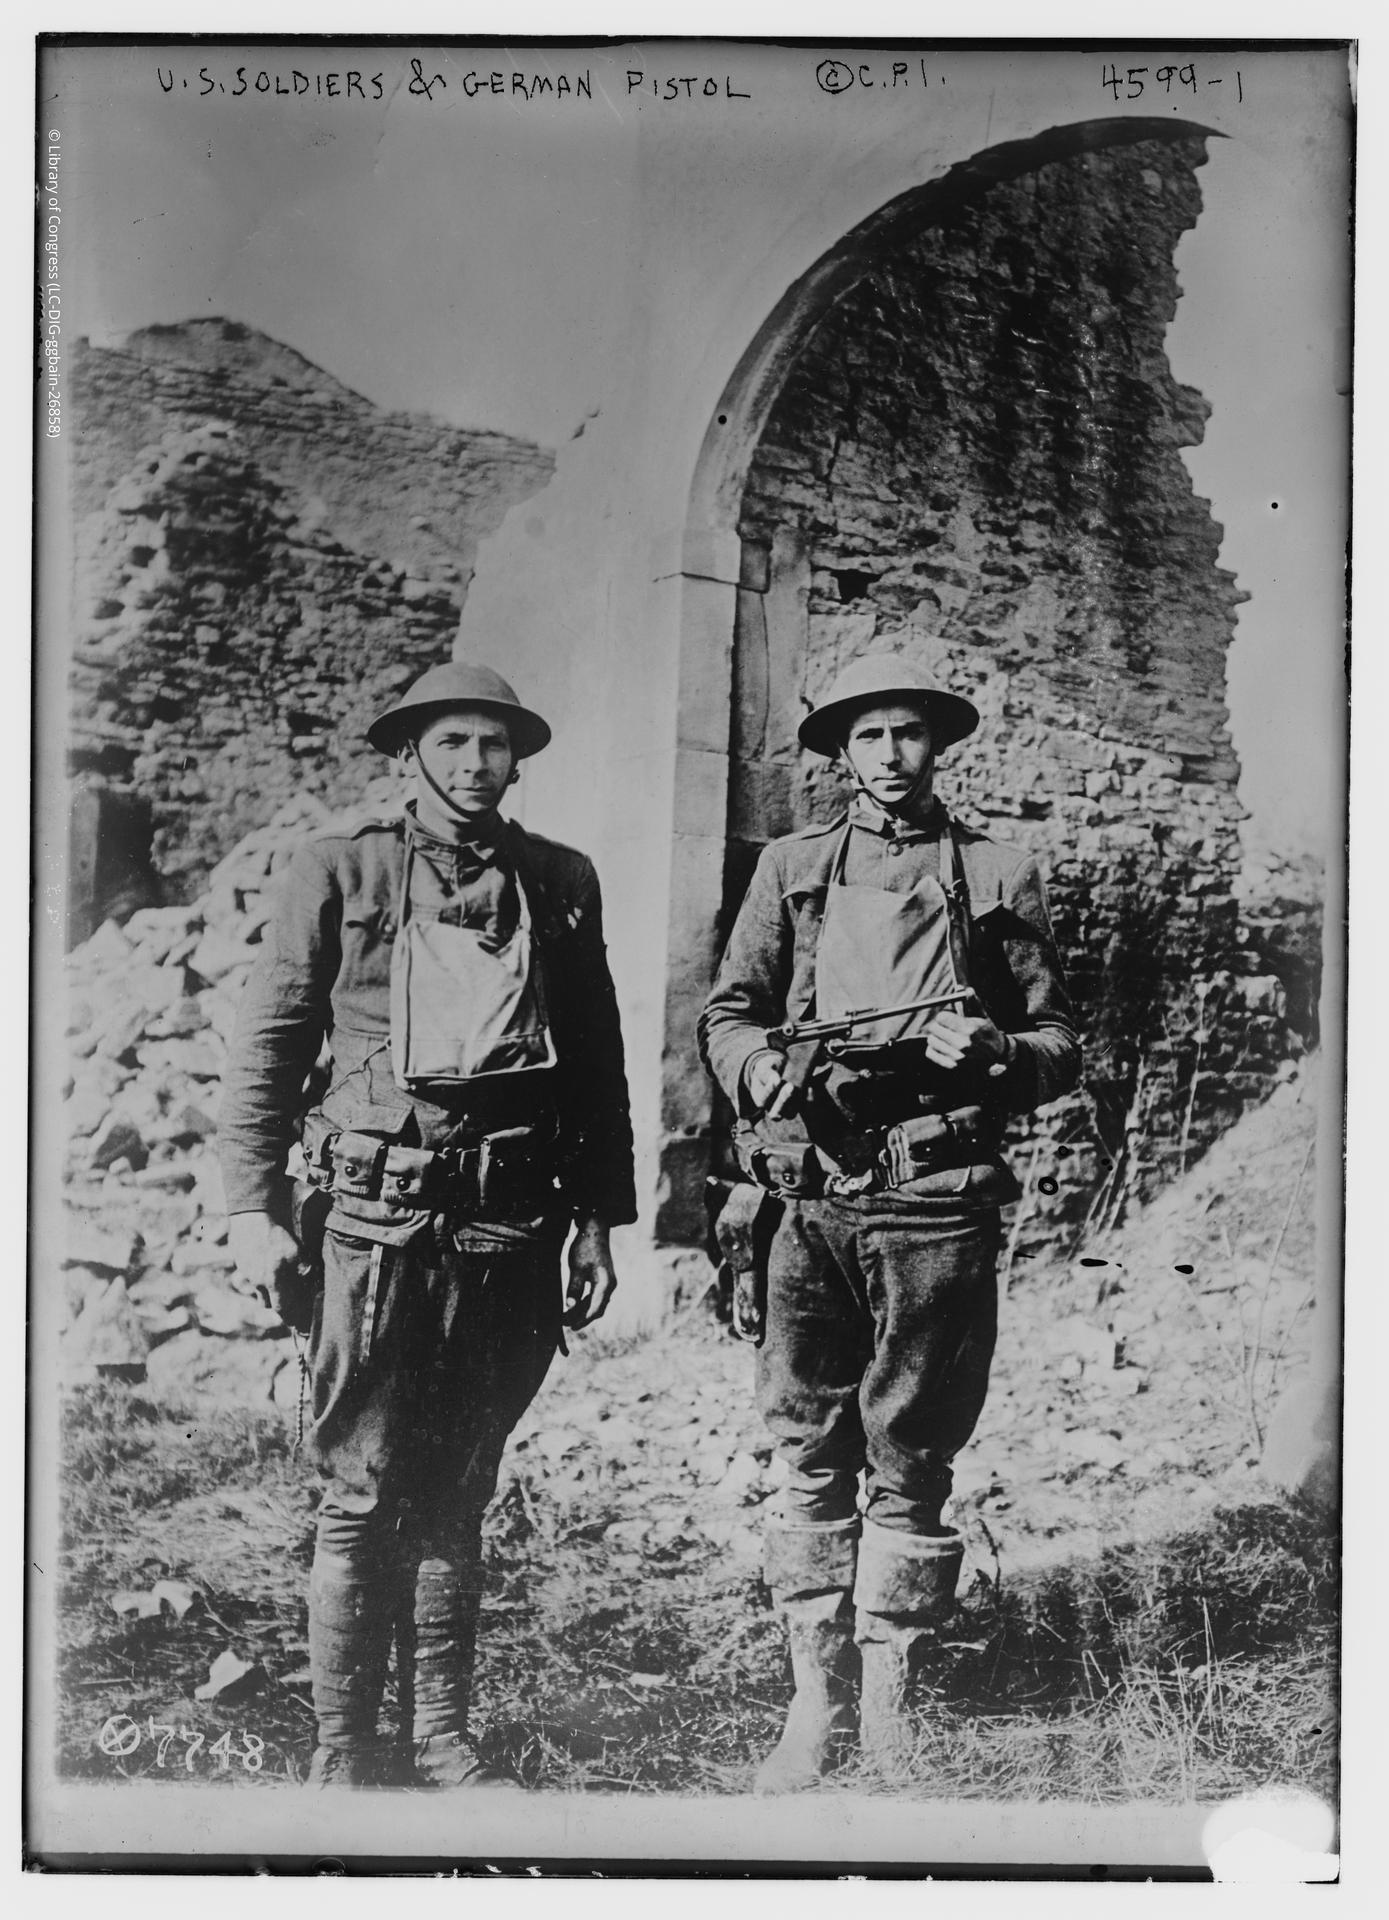 Photograph of US Soldiers and a German pistol.